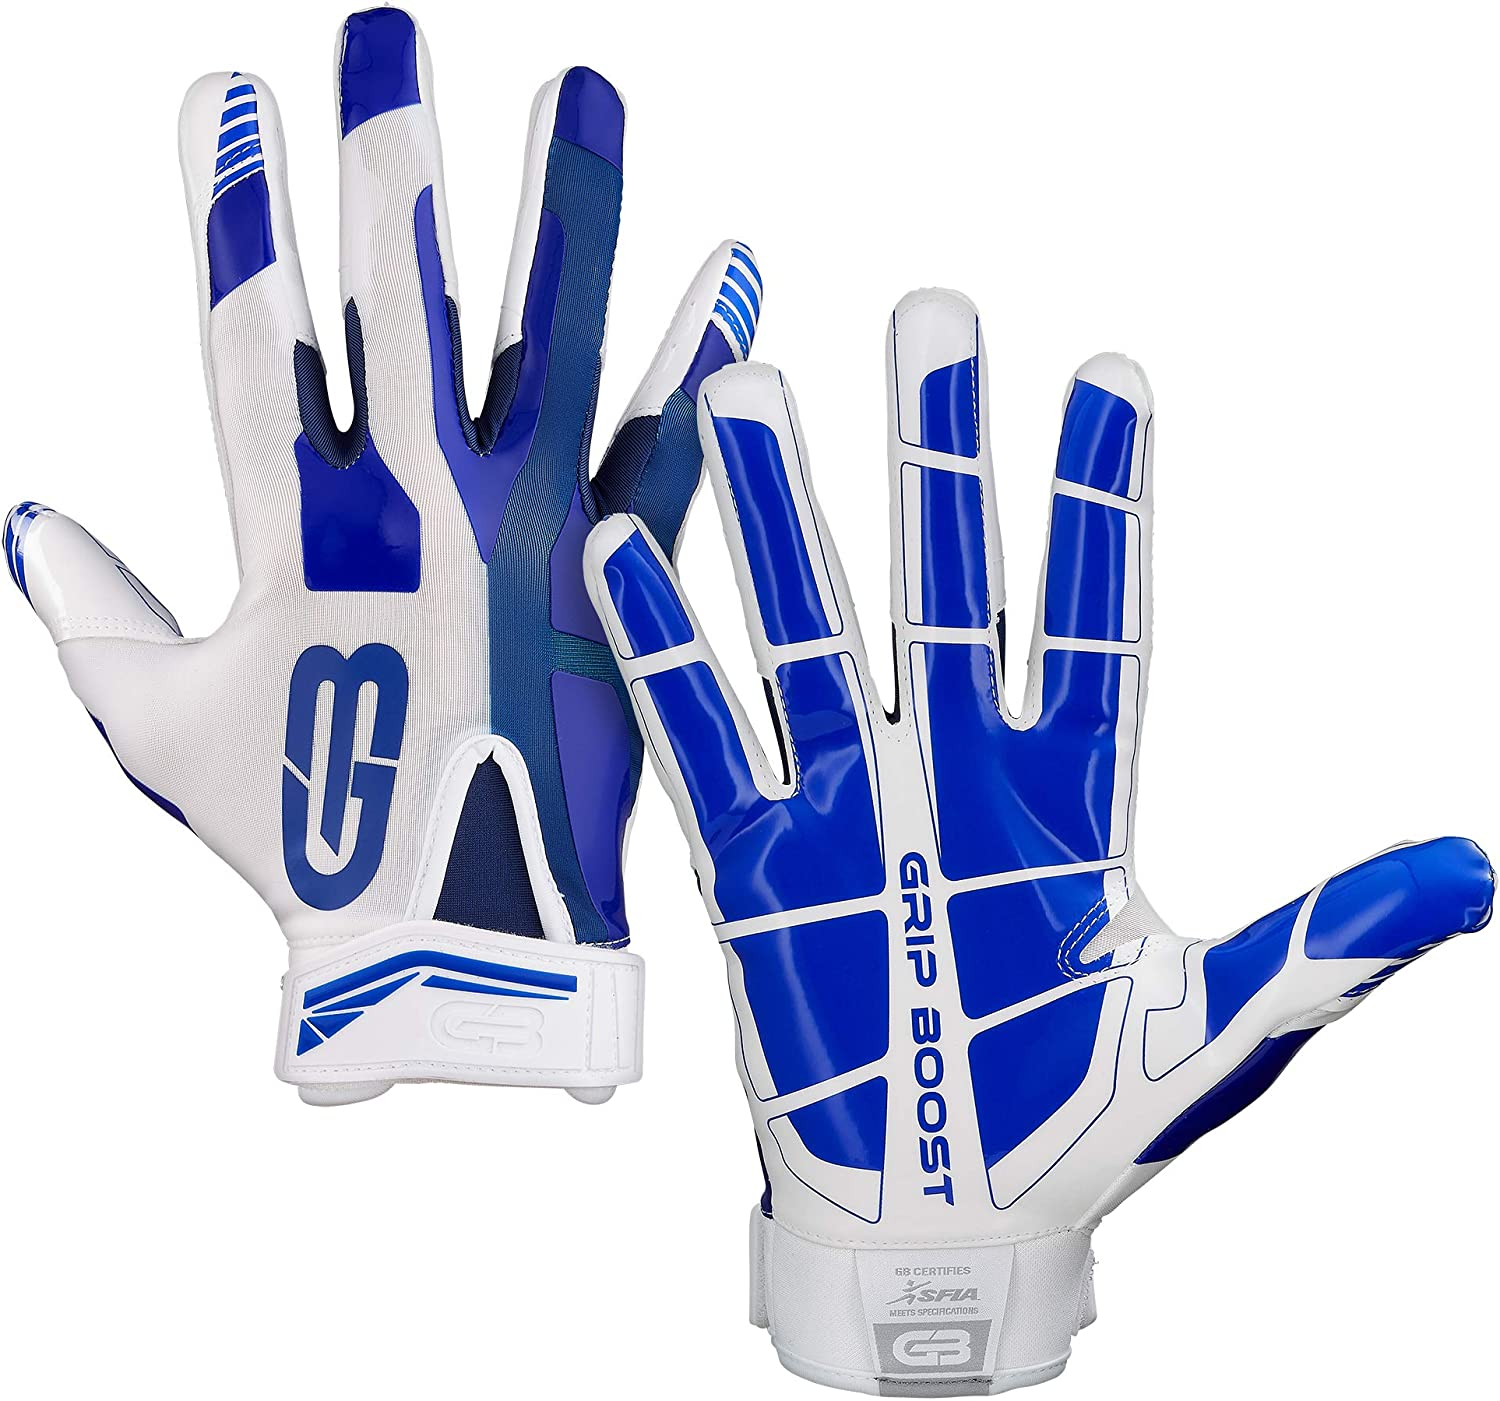 Grip Special sale item Boost Stealth Dual Color Max 85% OFF Football Adult Mens Gloves Sizes -